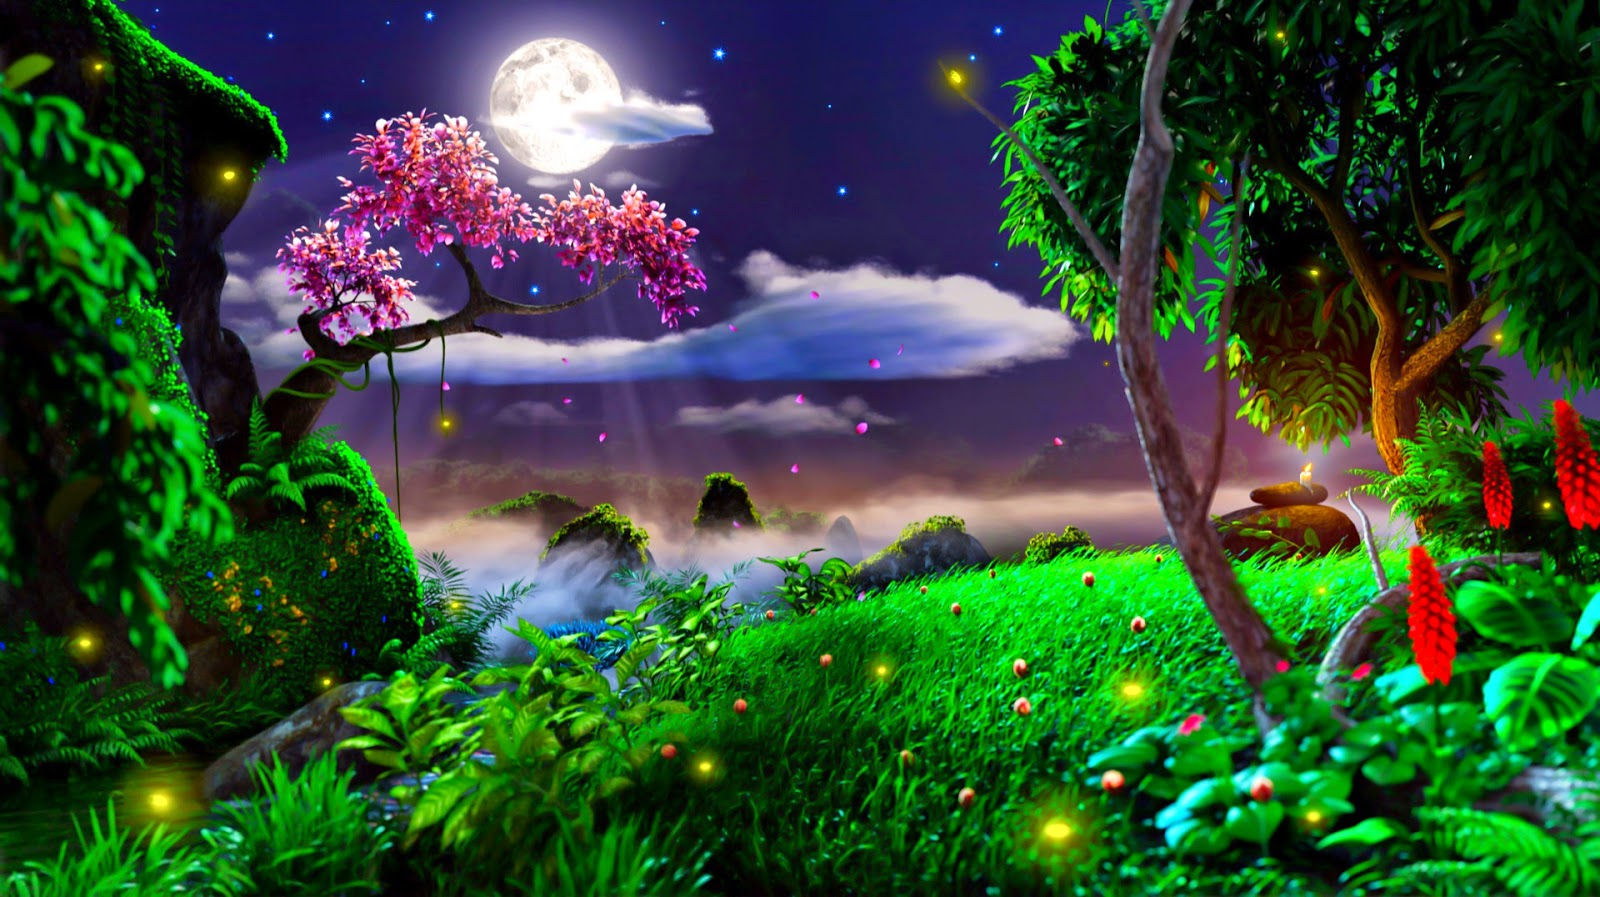 Moon-light-and-stars-night-background-with-trees-nature-art-images-1920x1076[1].jpg